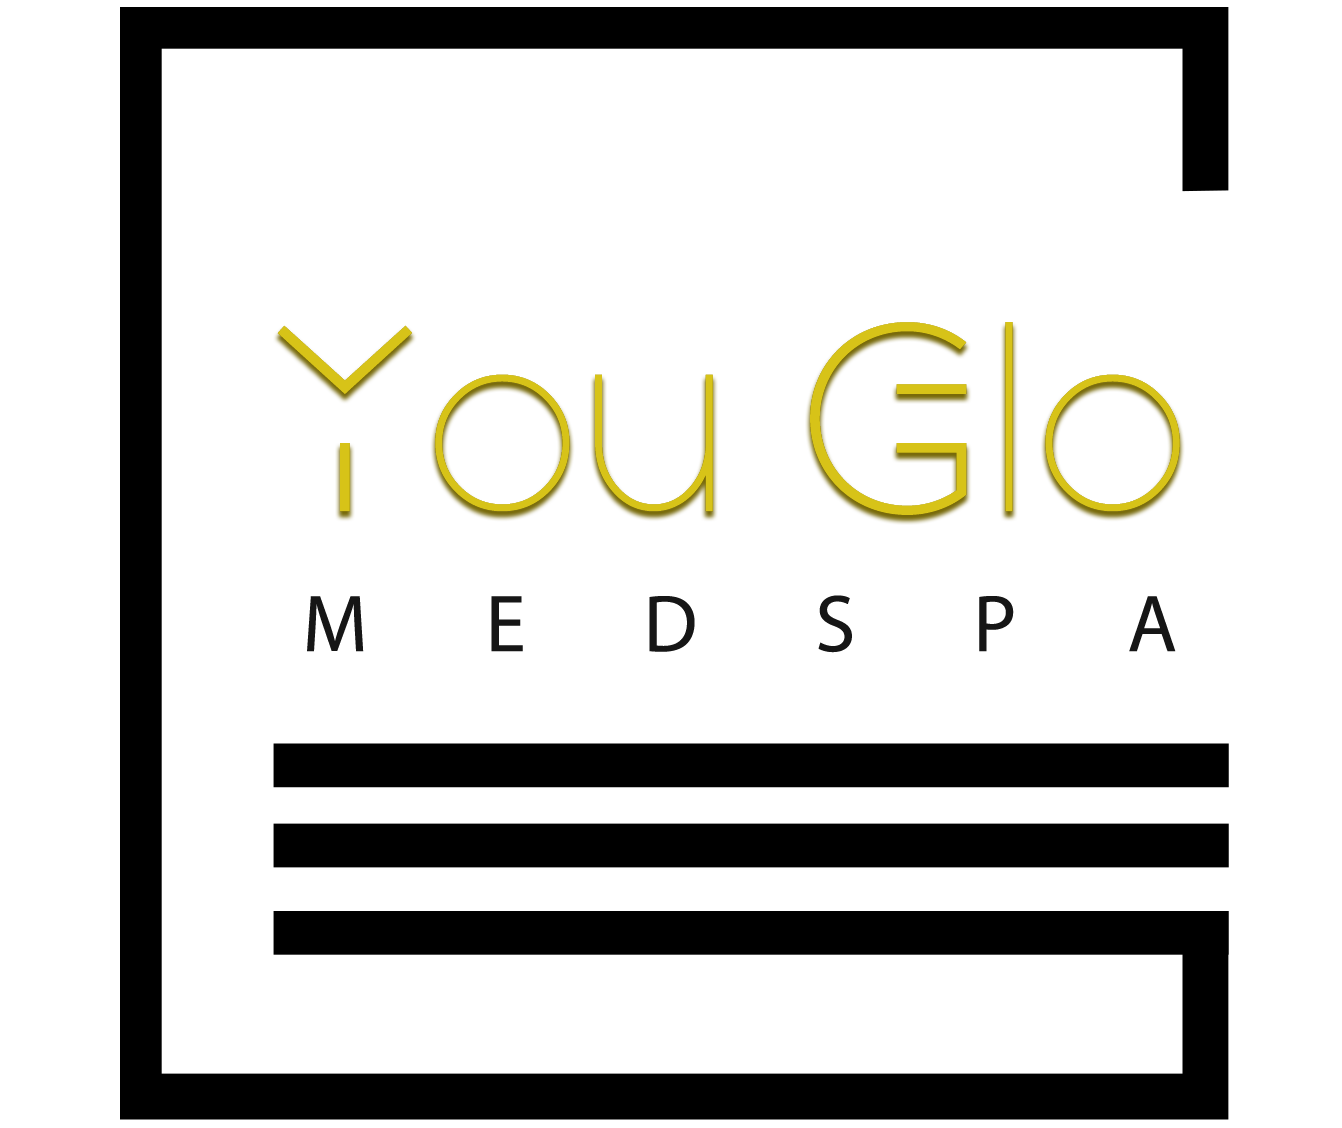 You Glo Medspa